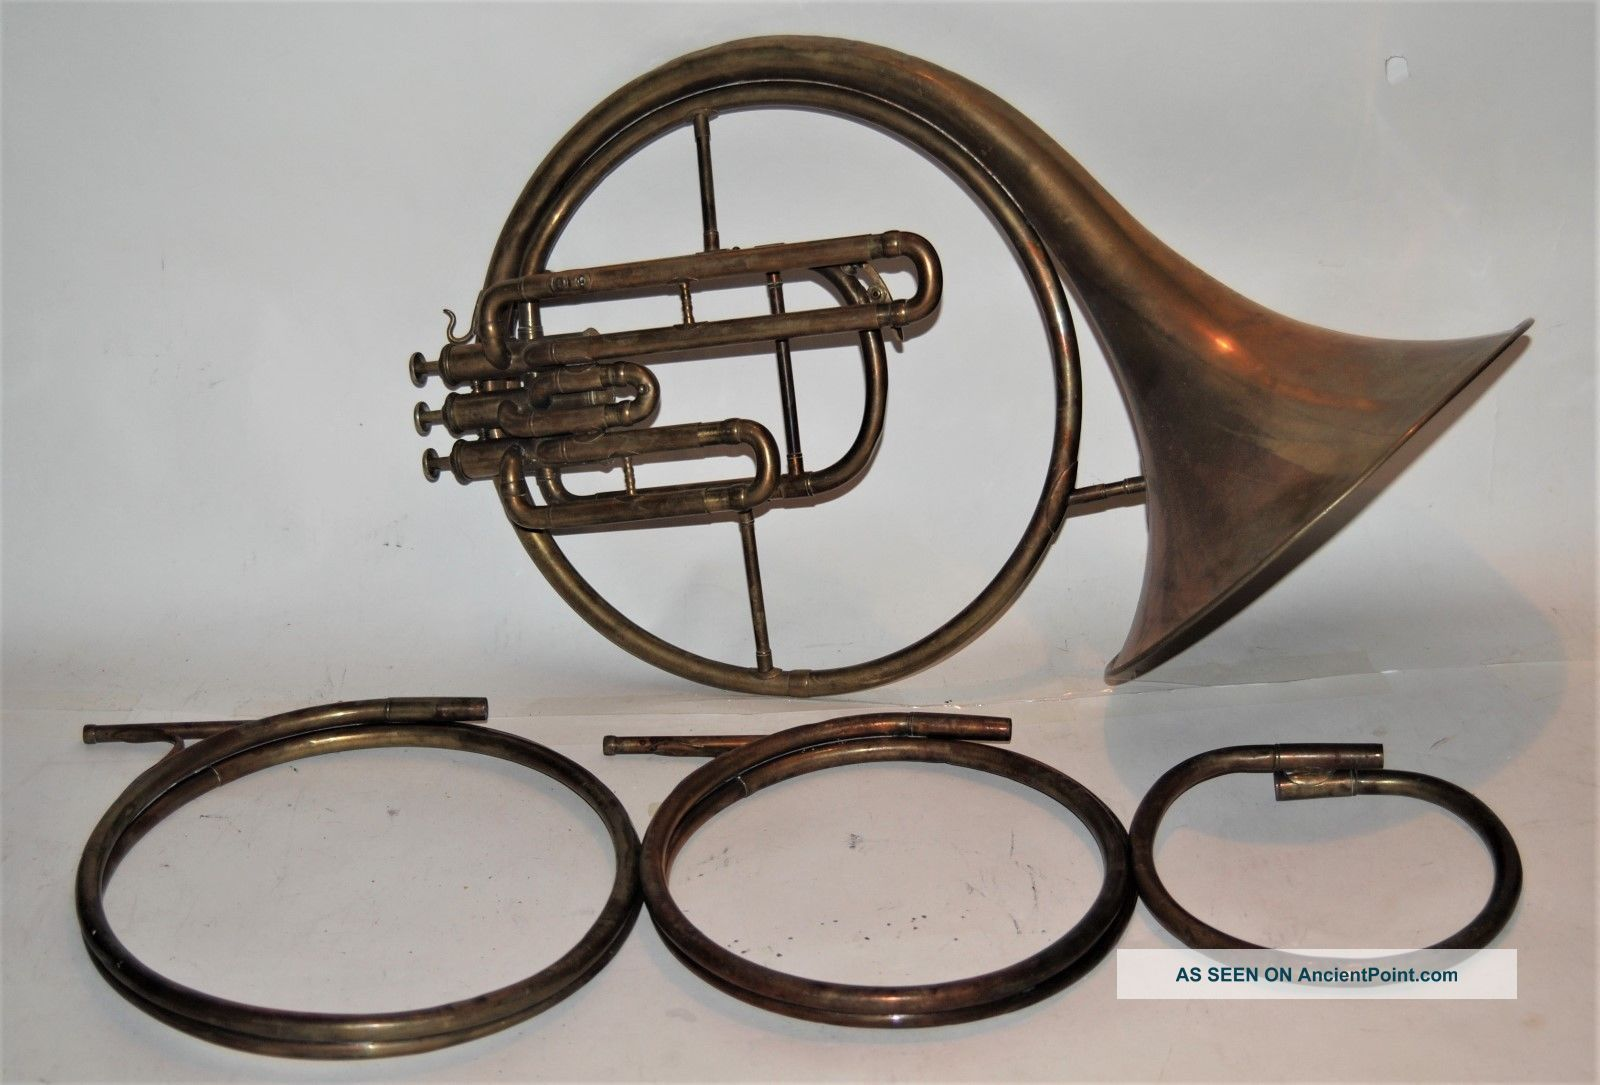 French Horn 1905 From J W Petter With 3 Crooks Brass photo